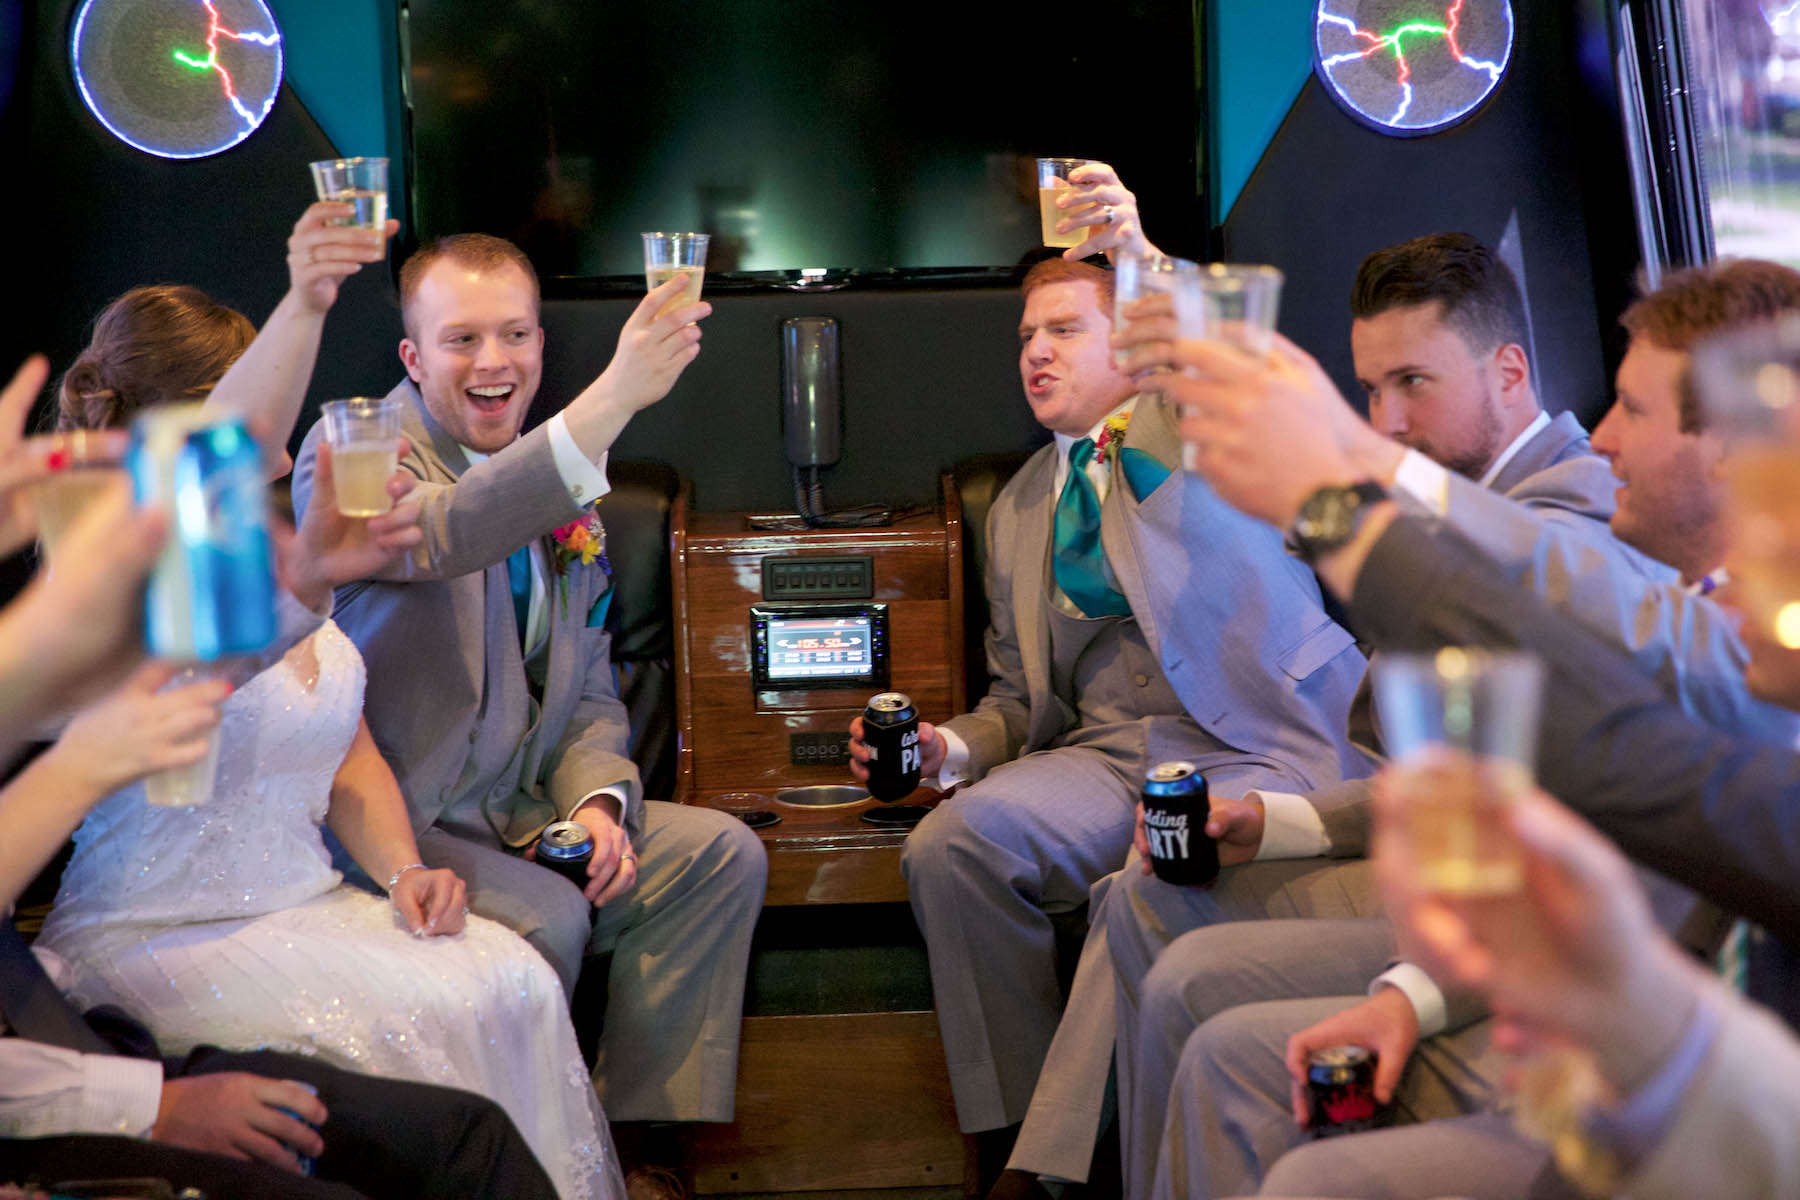 Ben starts the celebration with a toast in the party bus, Executive Transportation. Wedding pictures by Tiffany & Steve of Warmowski Photography.